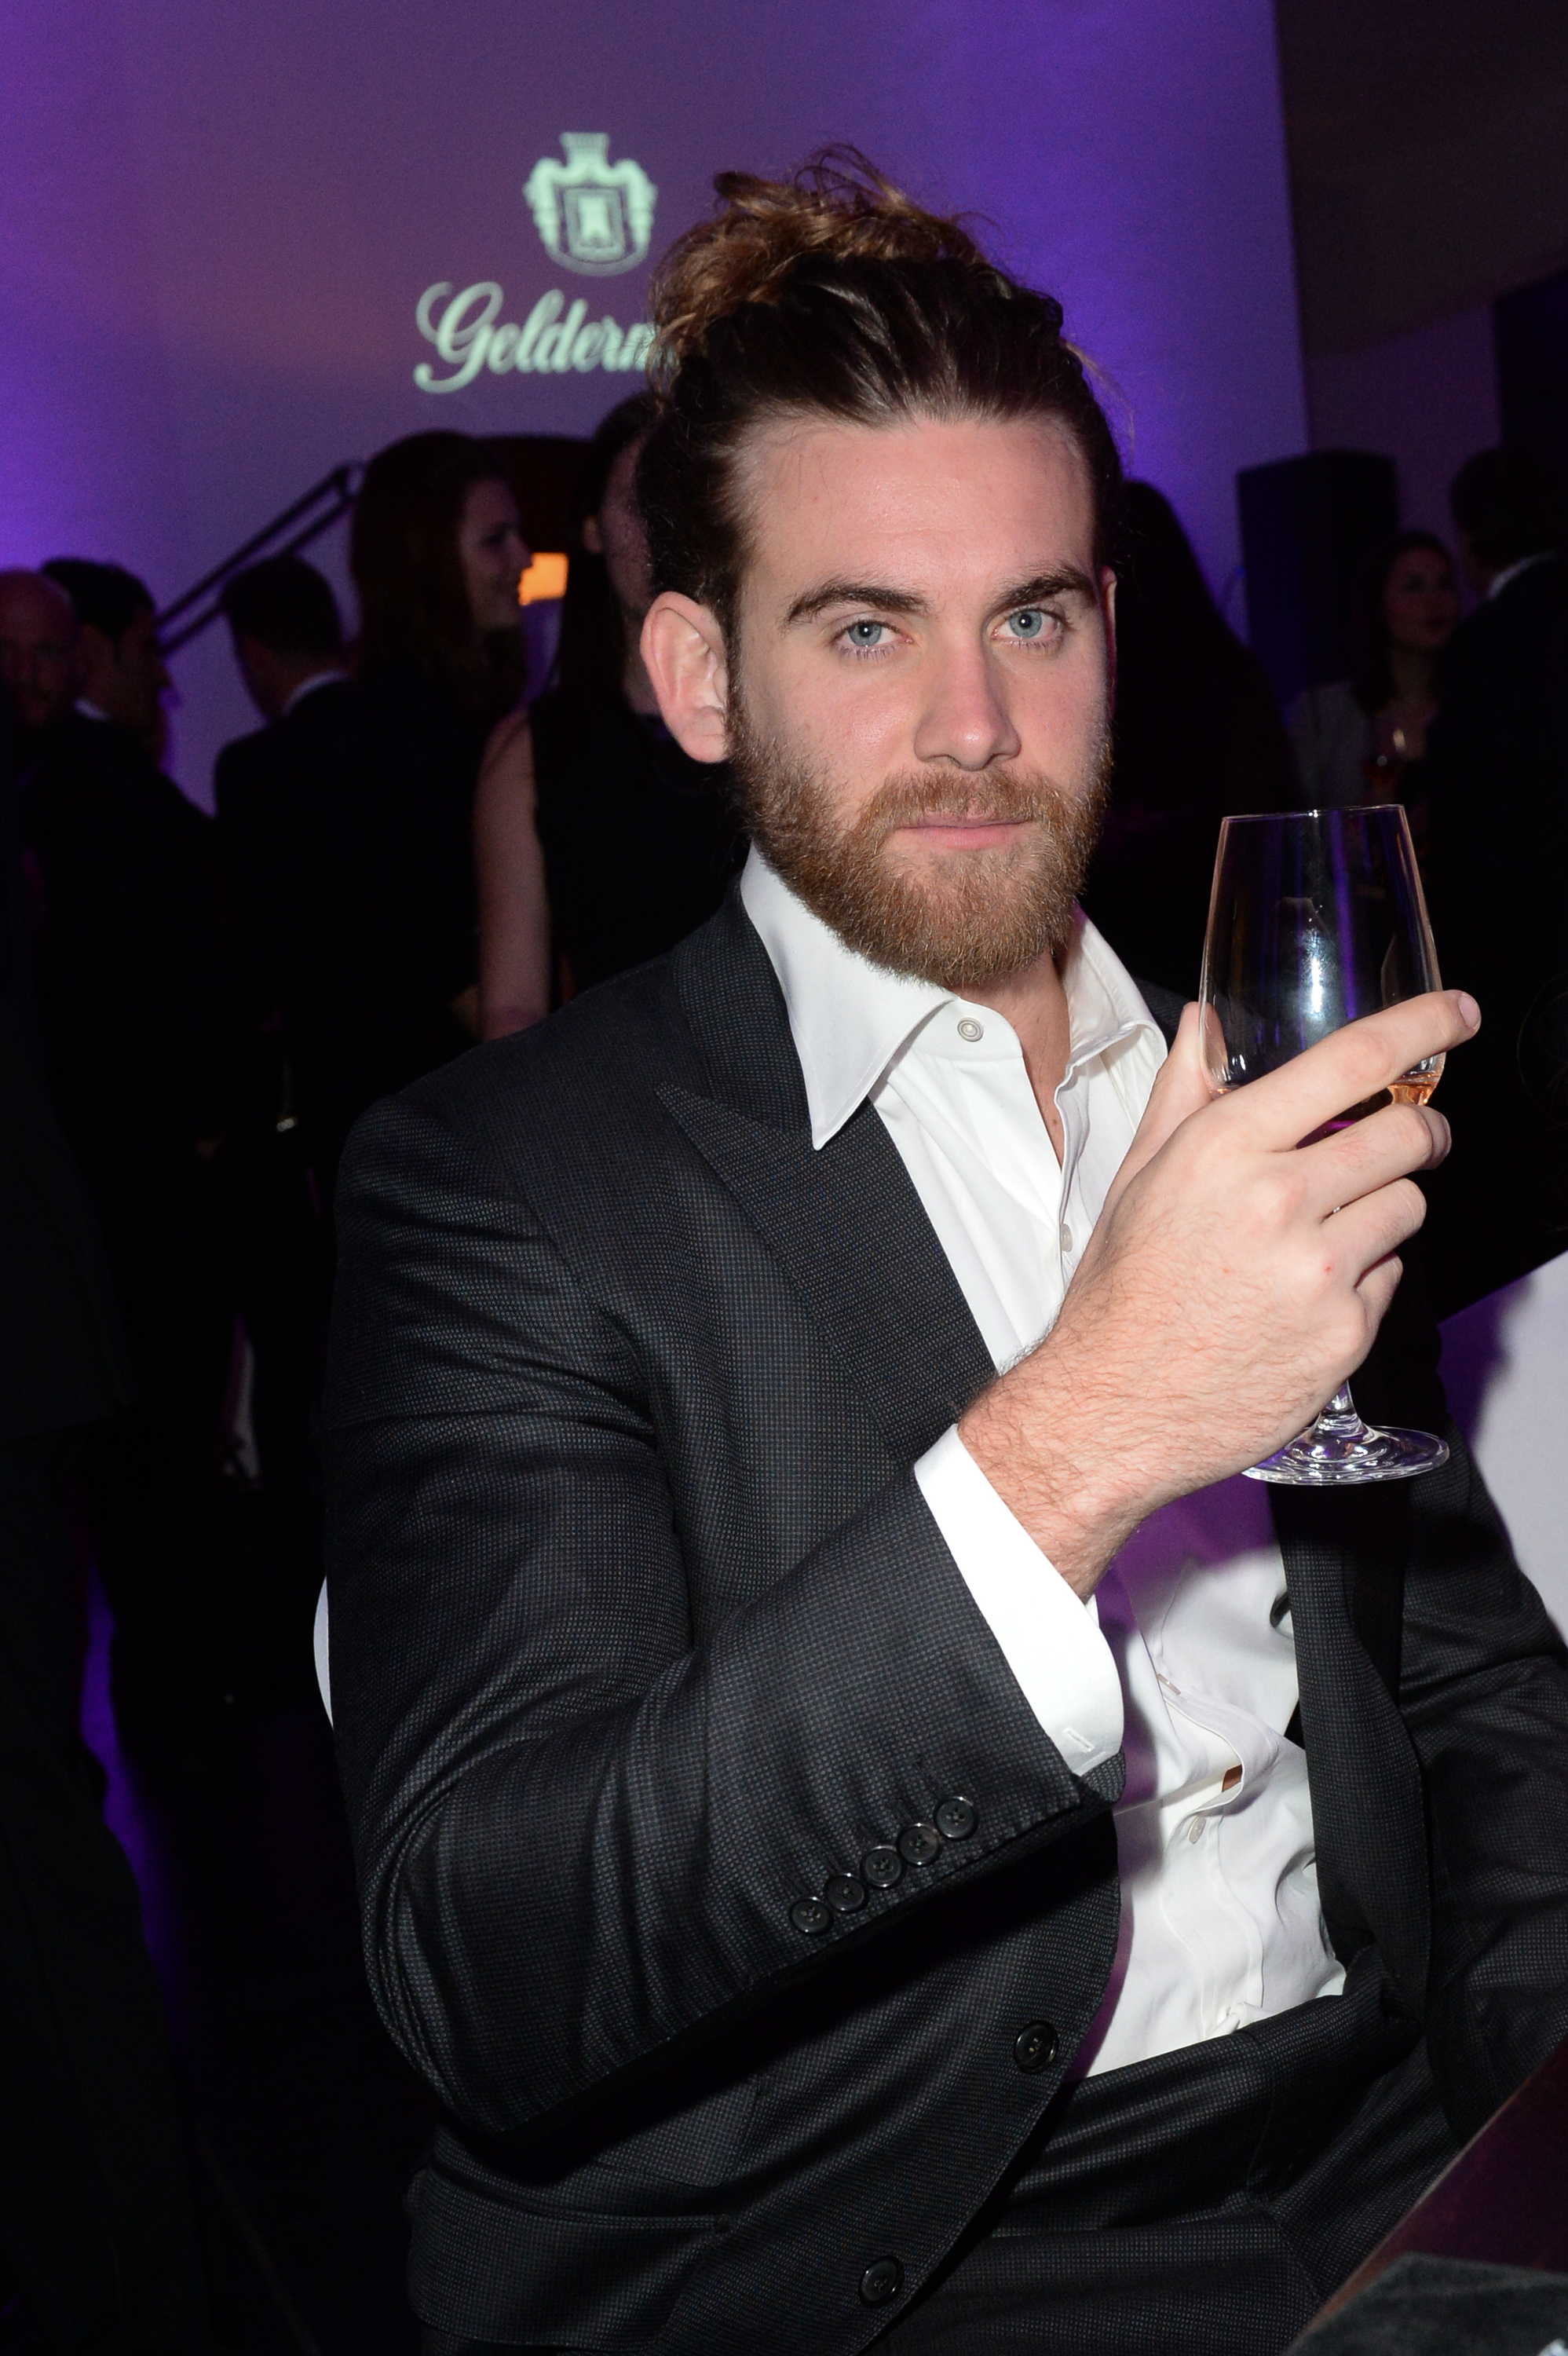 Brock O'Hurn attends the SPECTRE   by S.T. Dupont launch event in Berlin on November 4, 2015.